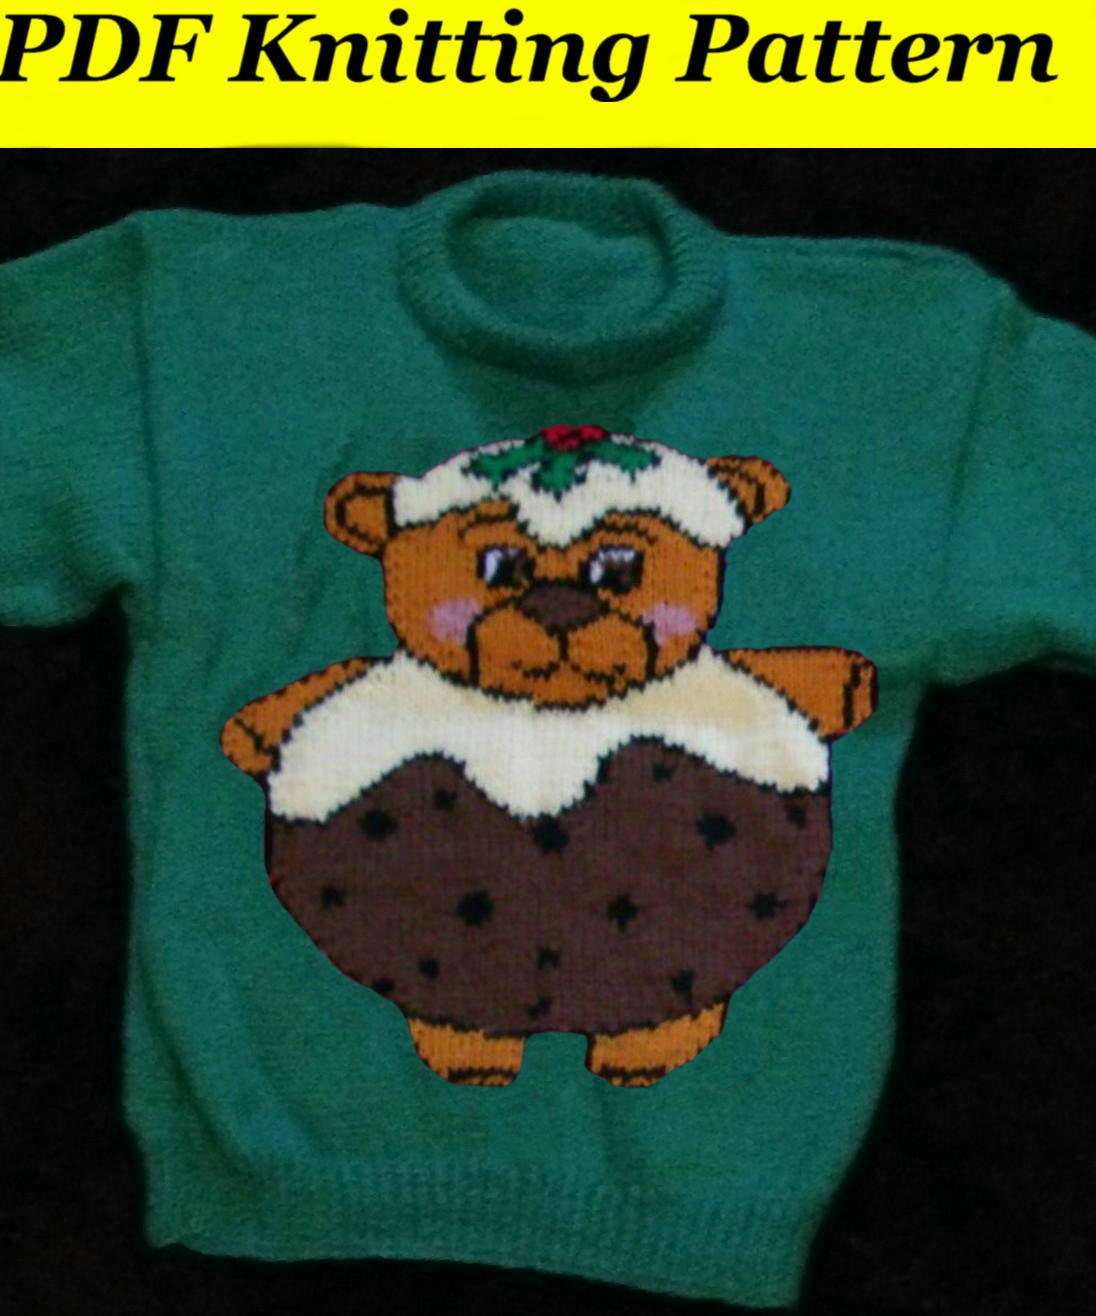 Childrens & Adults Christmas Pudding Teddy Bear Jumper / Sweater Knitting...